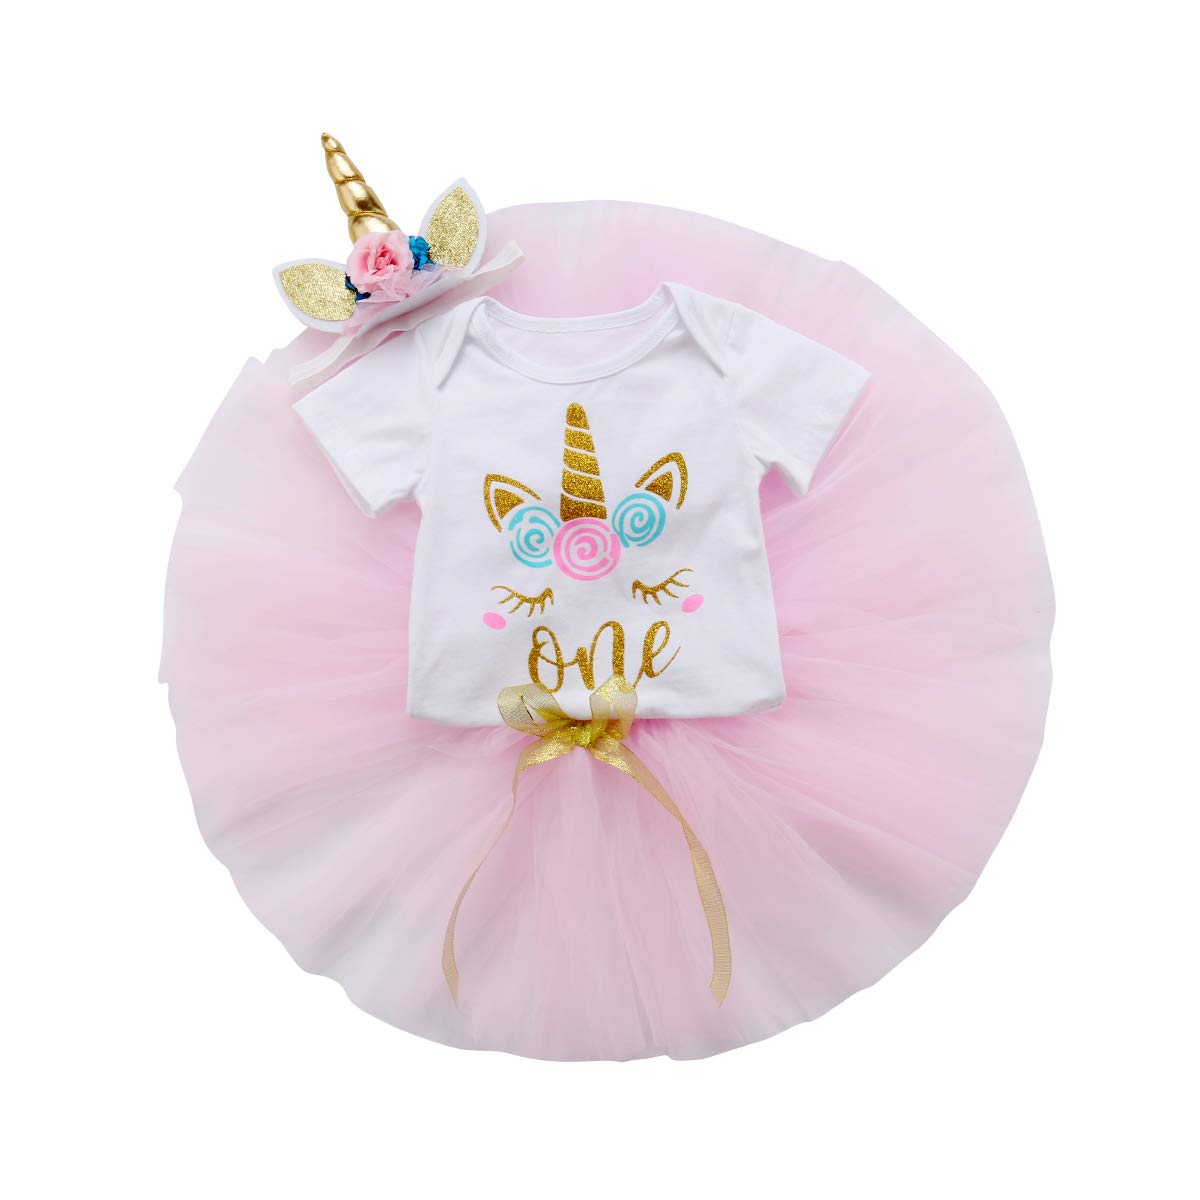 3PCS Unicorn Outfit Newborn Baby Girls 1st Birthday Romper + Tutu Skirt Dress + Headband Clothing Set citgeett